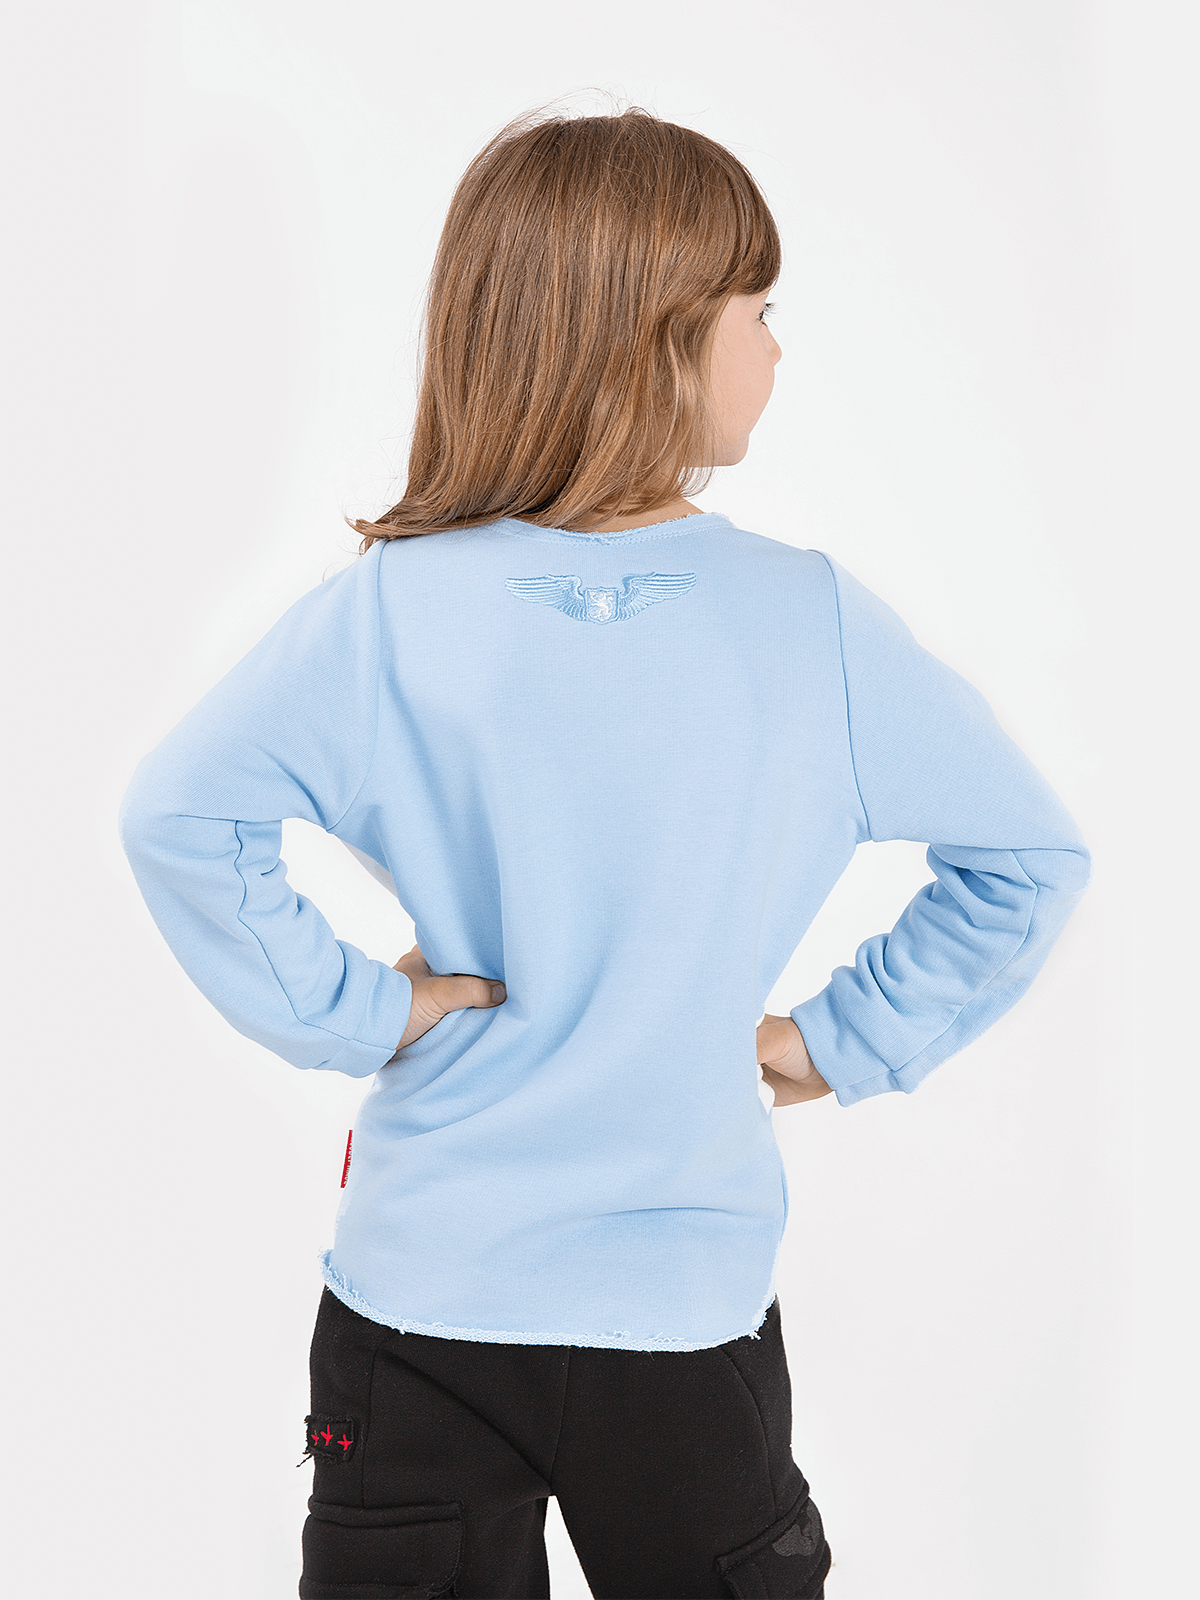 Kids Sweatshirt Flying Fishes. Color sky blue.  Material: 77% cotton, 23% polyester.